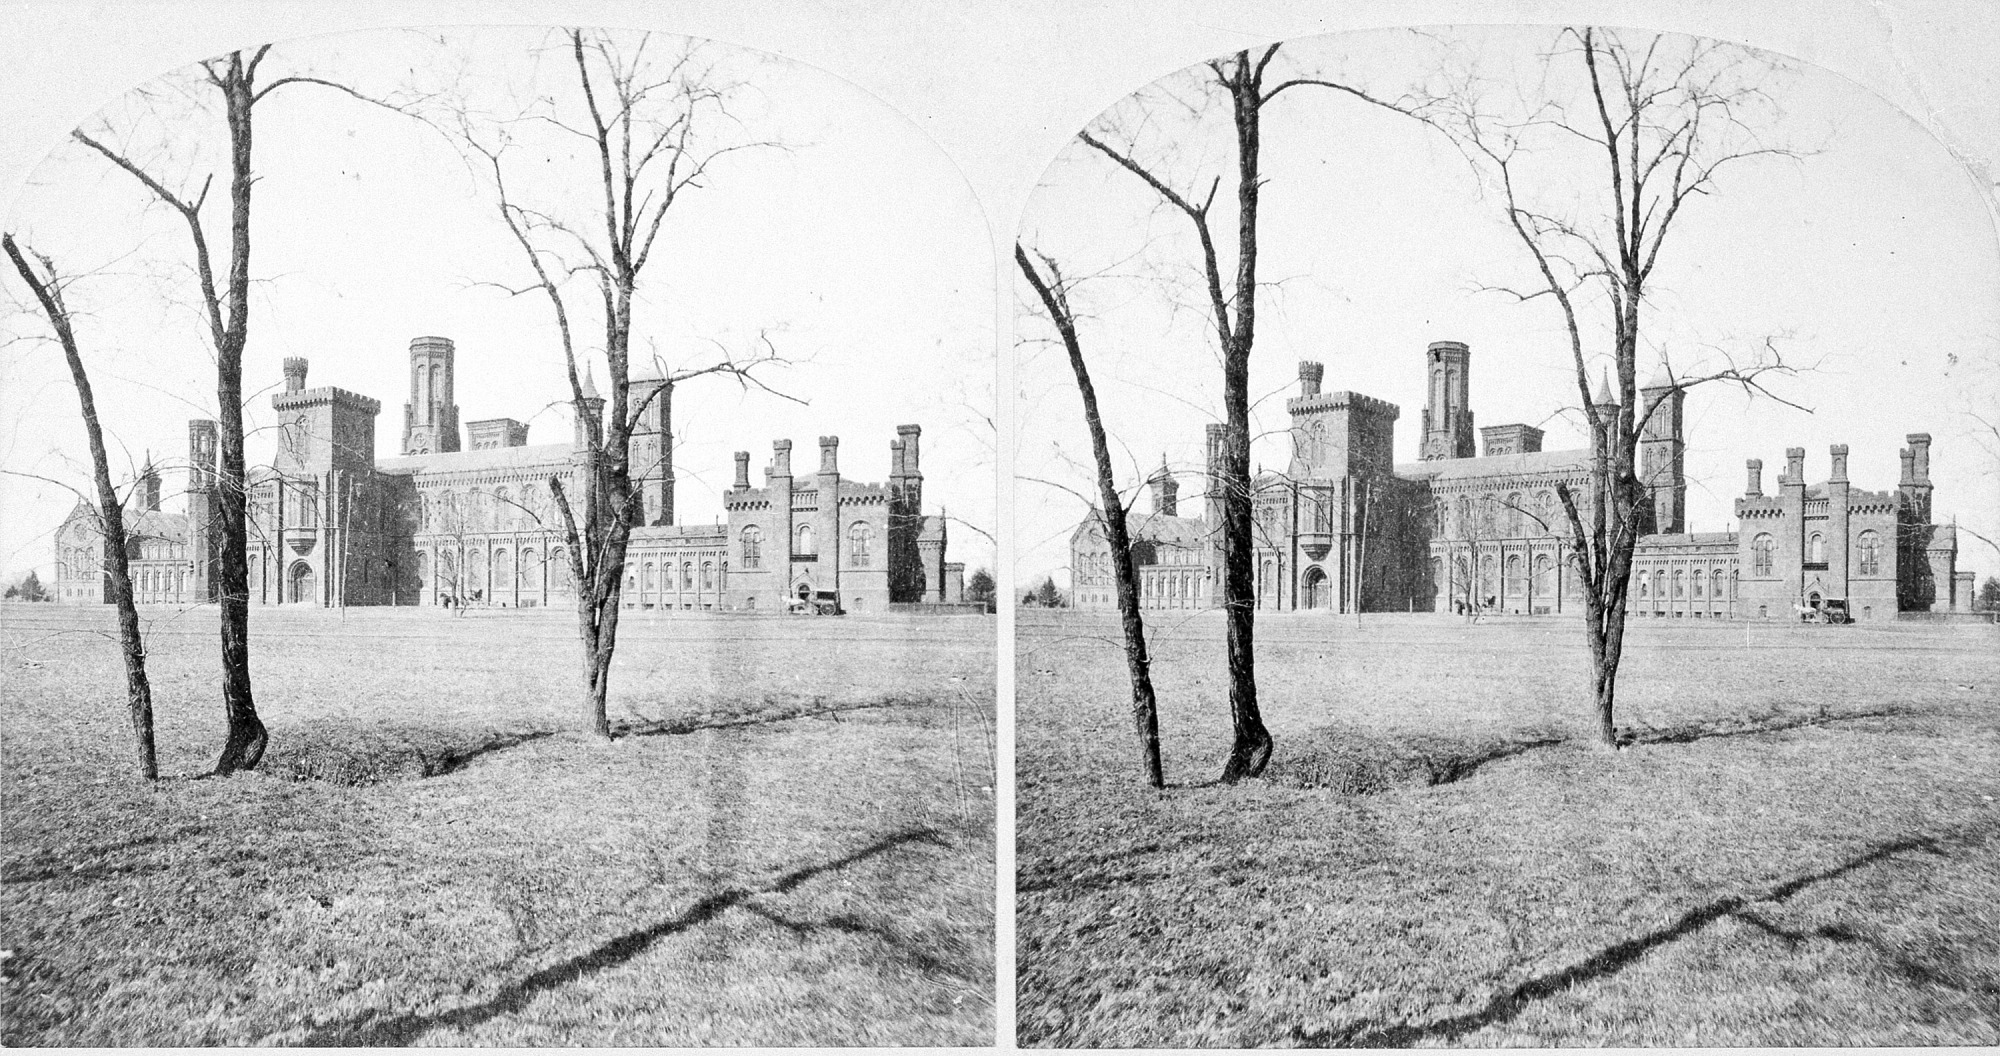 South Facade of SIB, by Unknown, pre 1884, Smithsonian Archives - History Div, 80-20128.